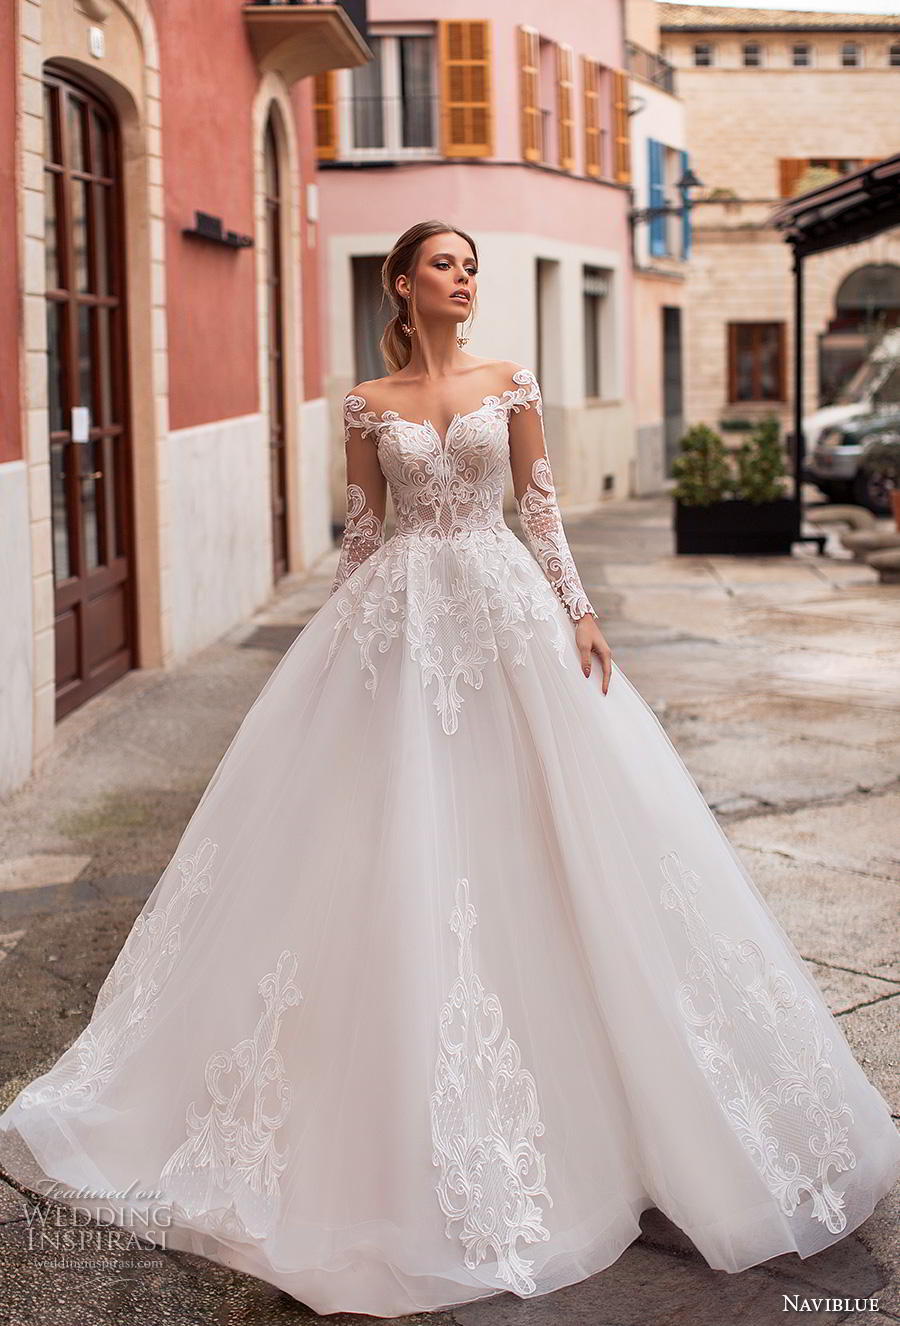 naviblue 2019 bridal long sleeves sweetheart neckline heavily embellished bodice princess ball gown a  line wedding dress sheer button back chapel train (3) mv